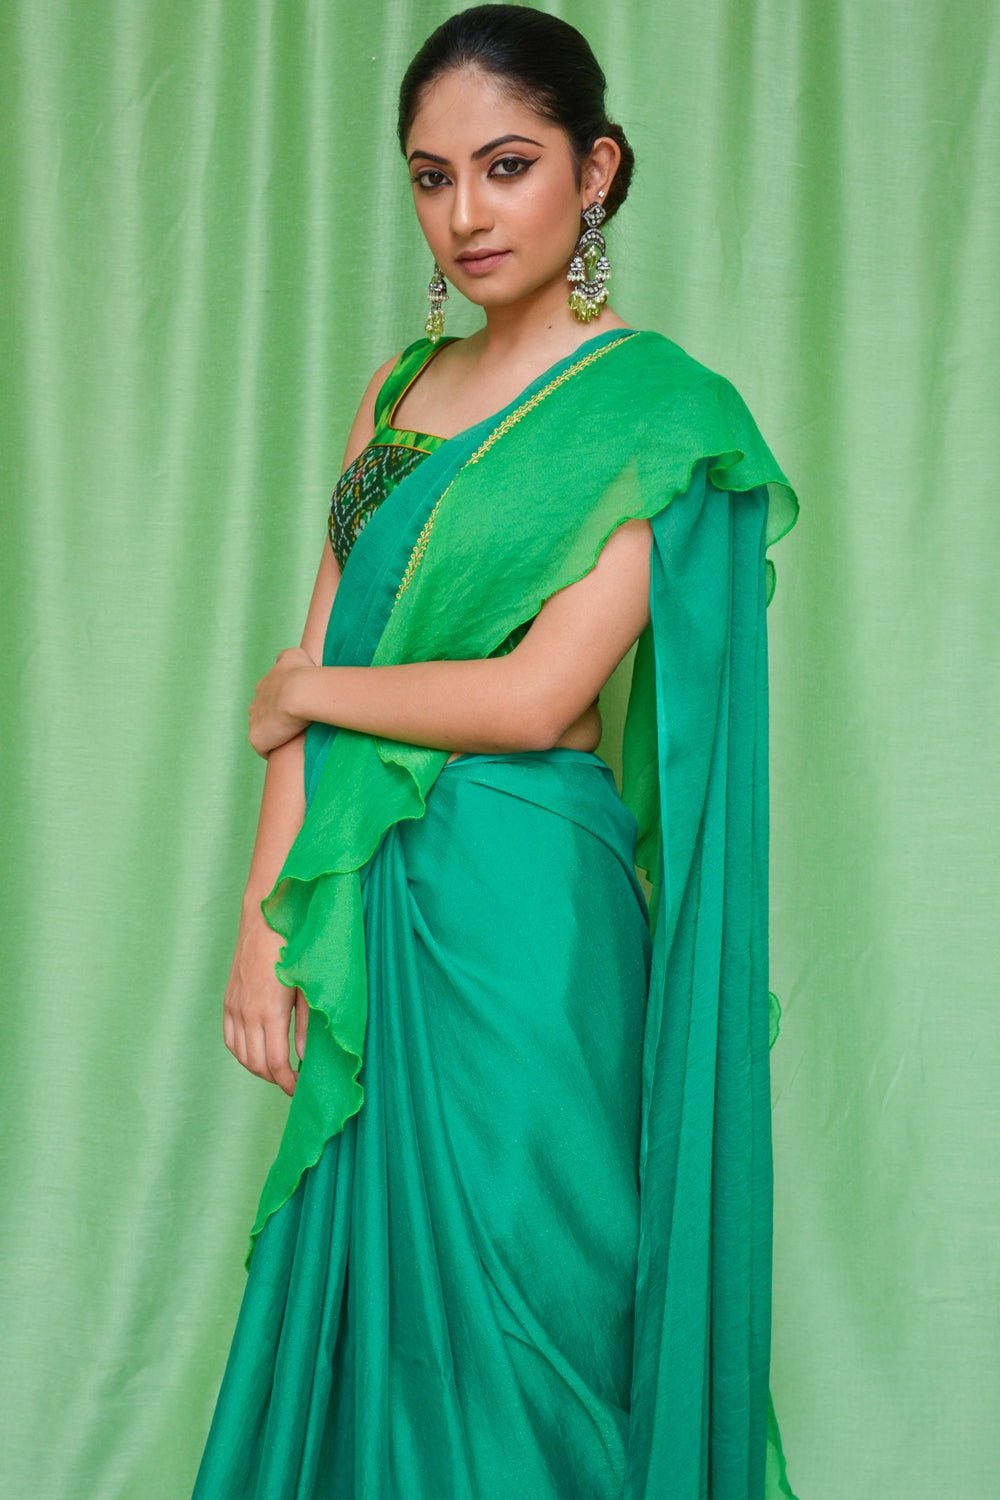 Green shimmer georgette ruffle saree with green-gold border - House of Blouse